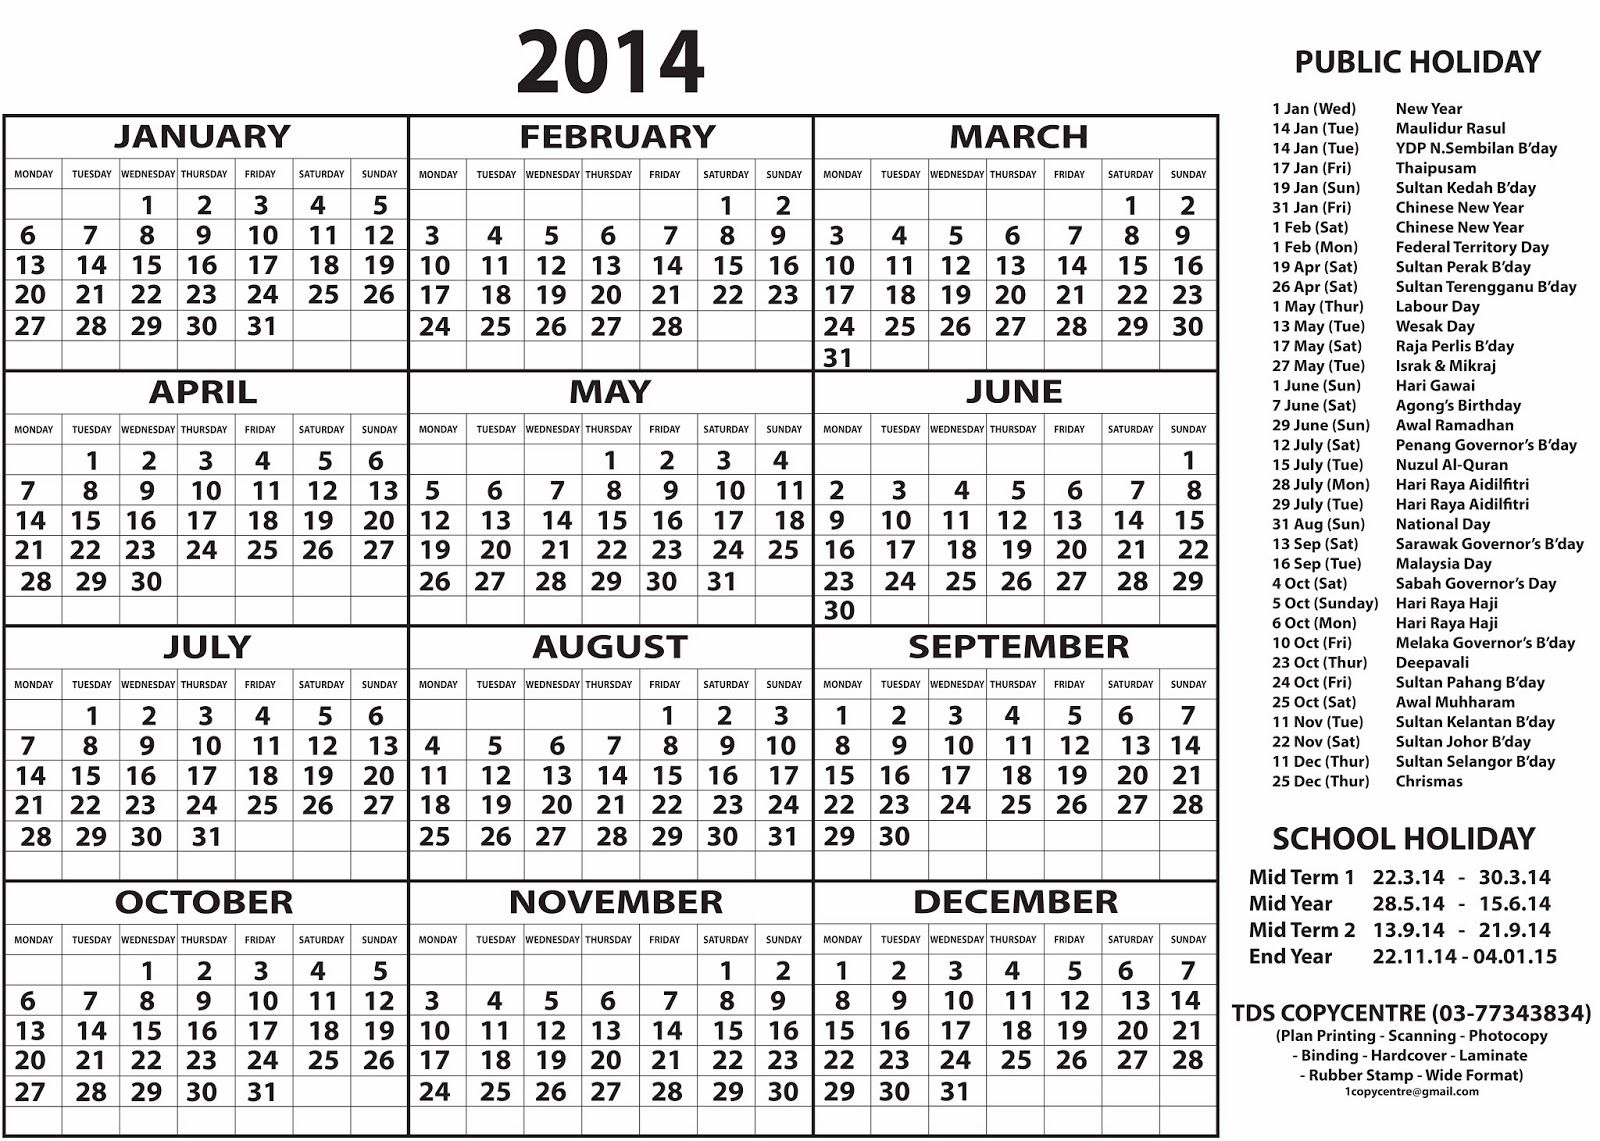 Kalendar 2014 printable 2014 calendar printable 2014 for Yearly planning calendar template 2014